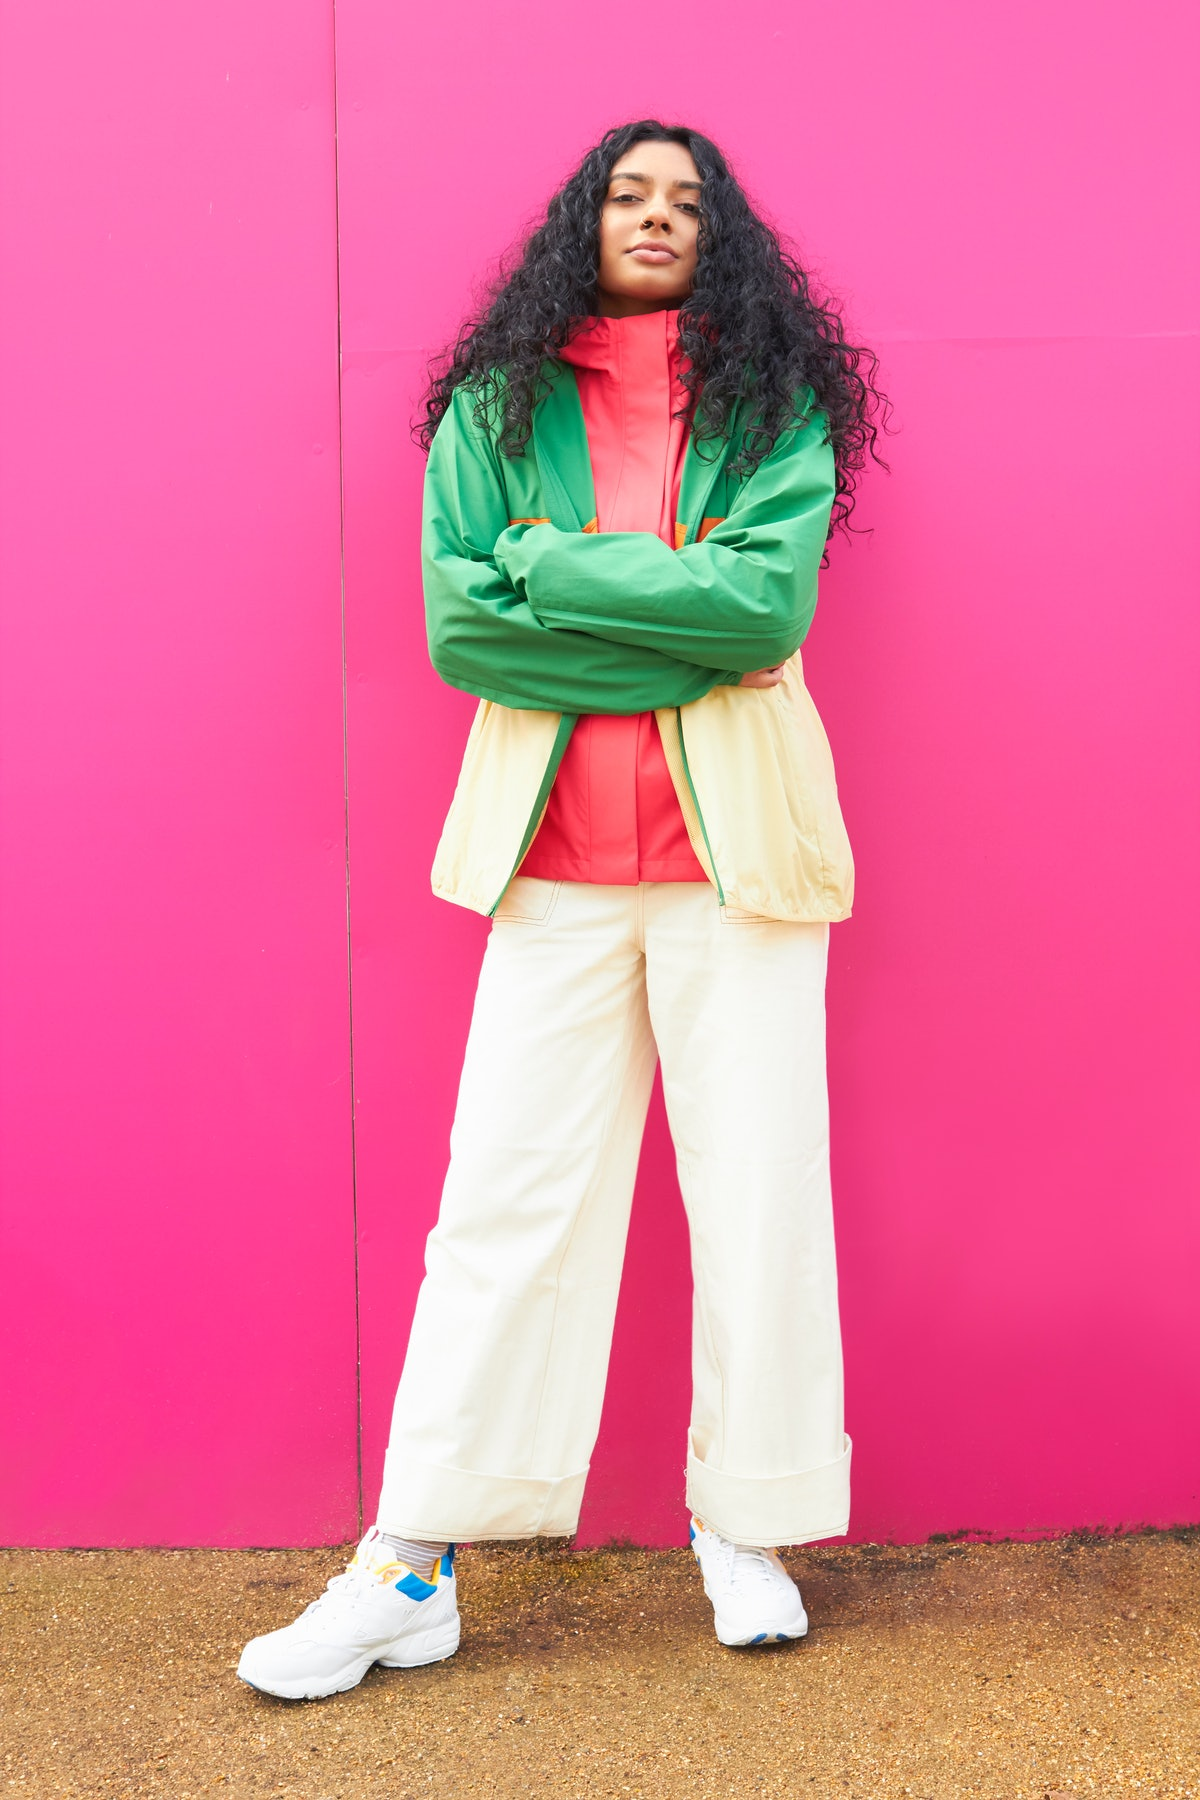 Young woman crossing her arms with a pink background, since she's an intense Cancer.